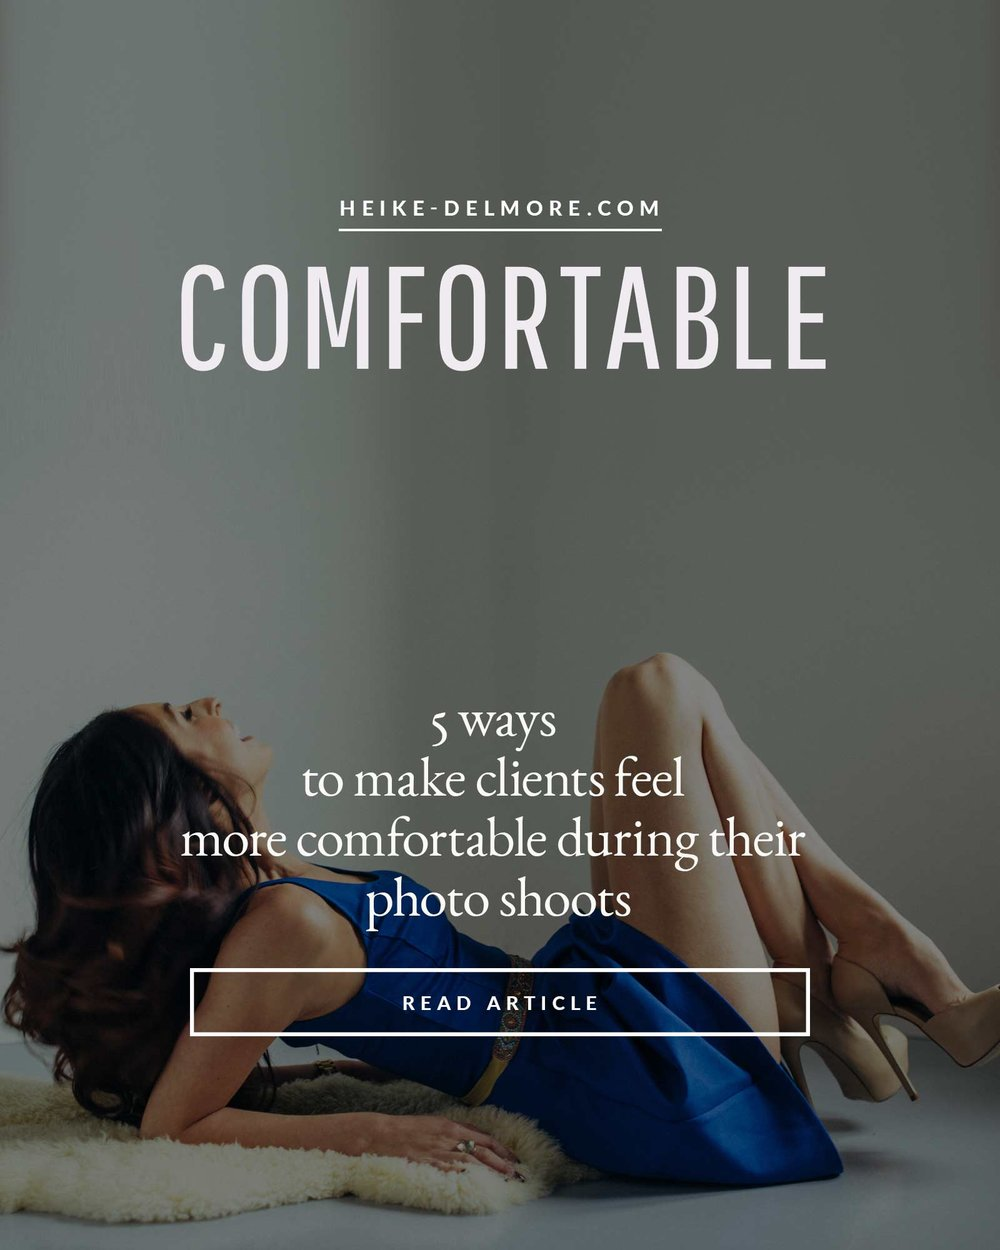 5-ways-make-clients-comfortable-photo-shoot-heike-delmore